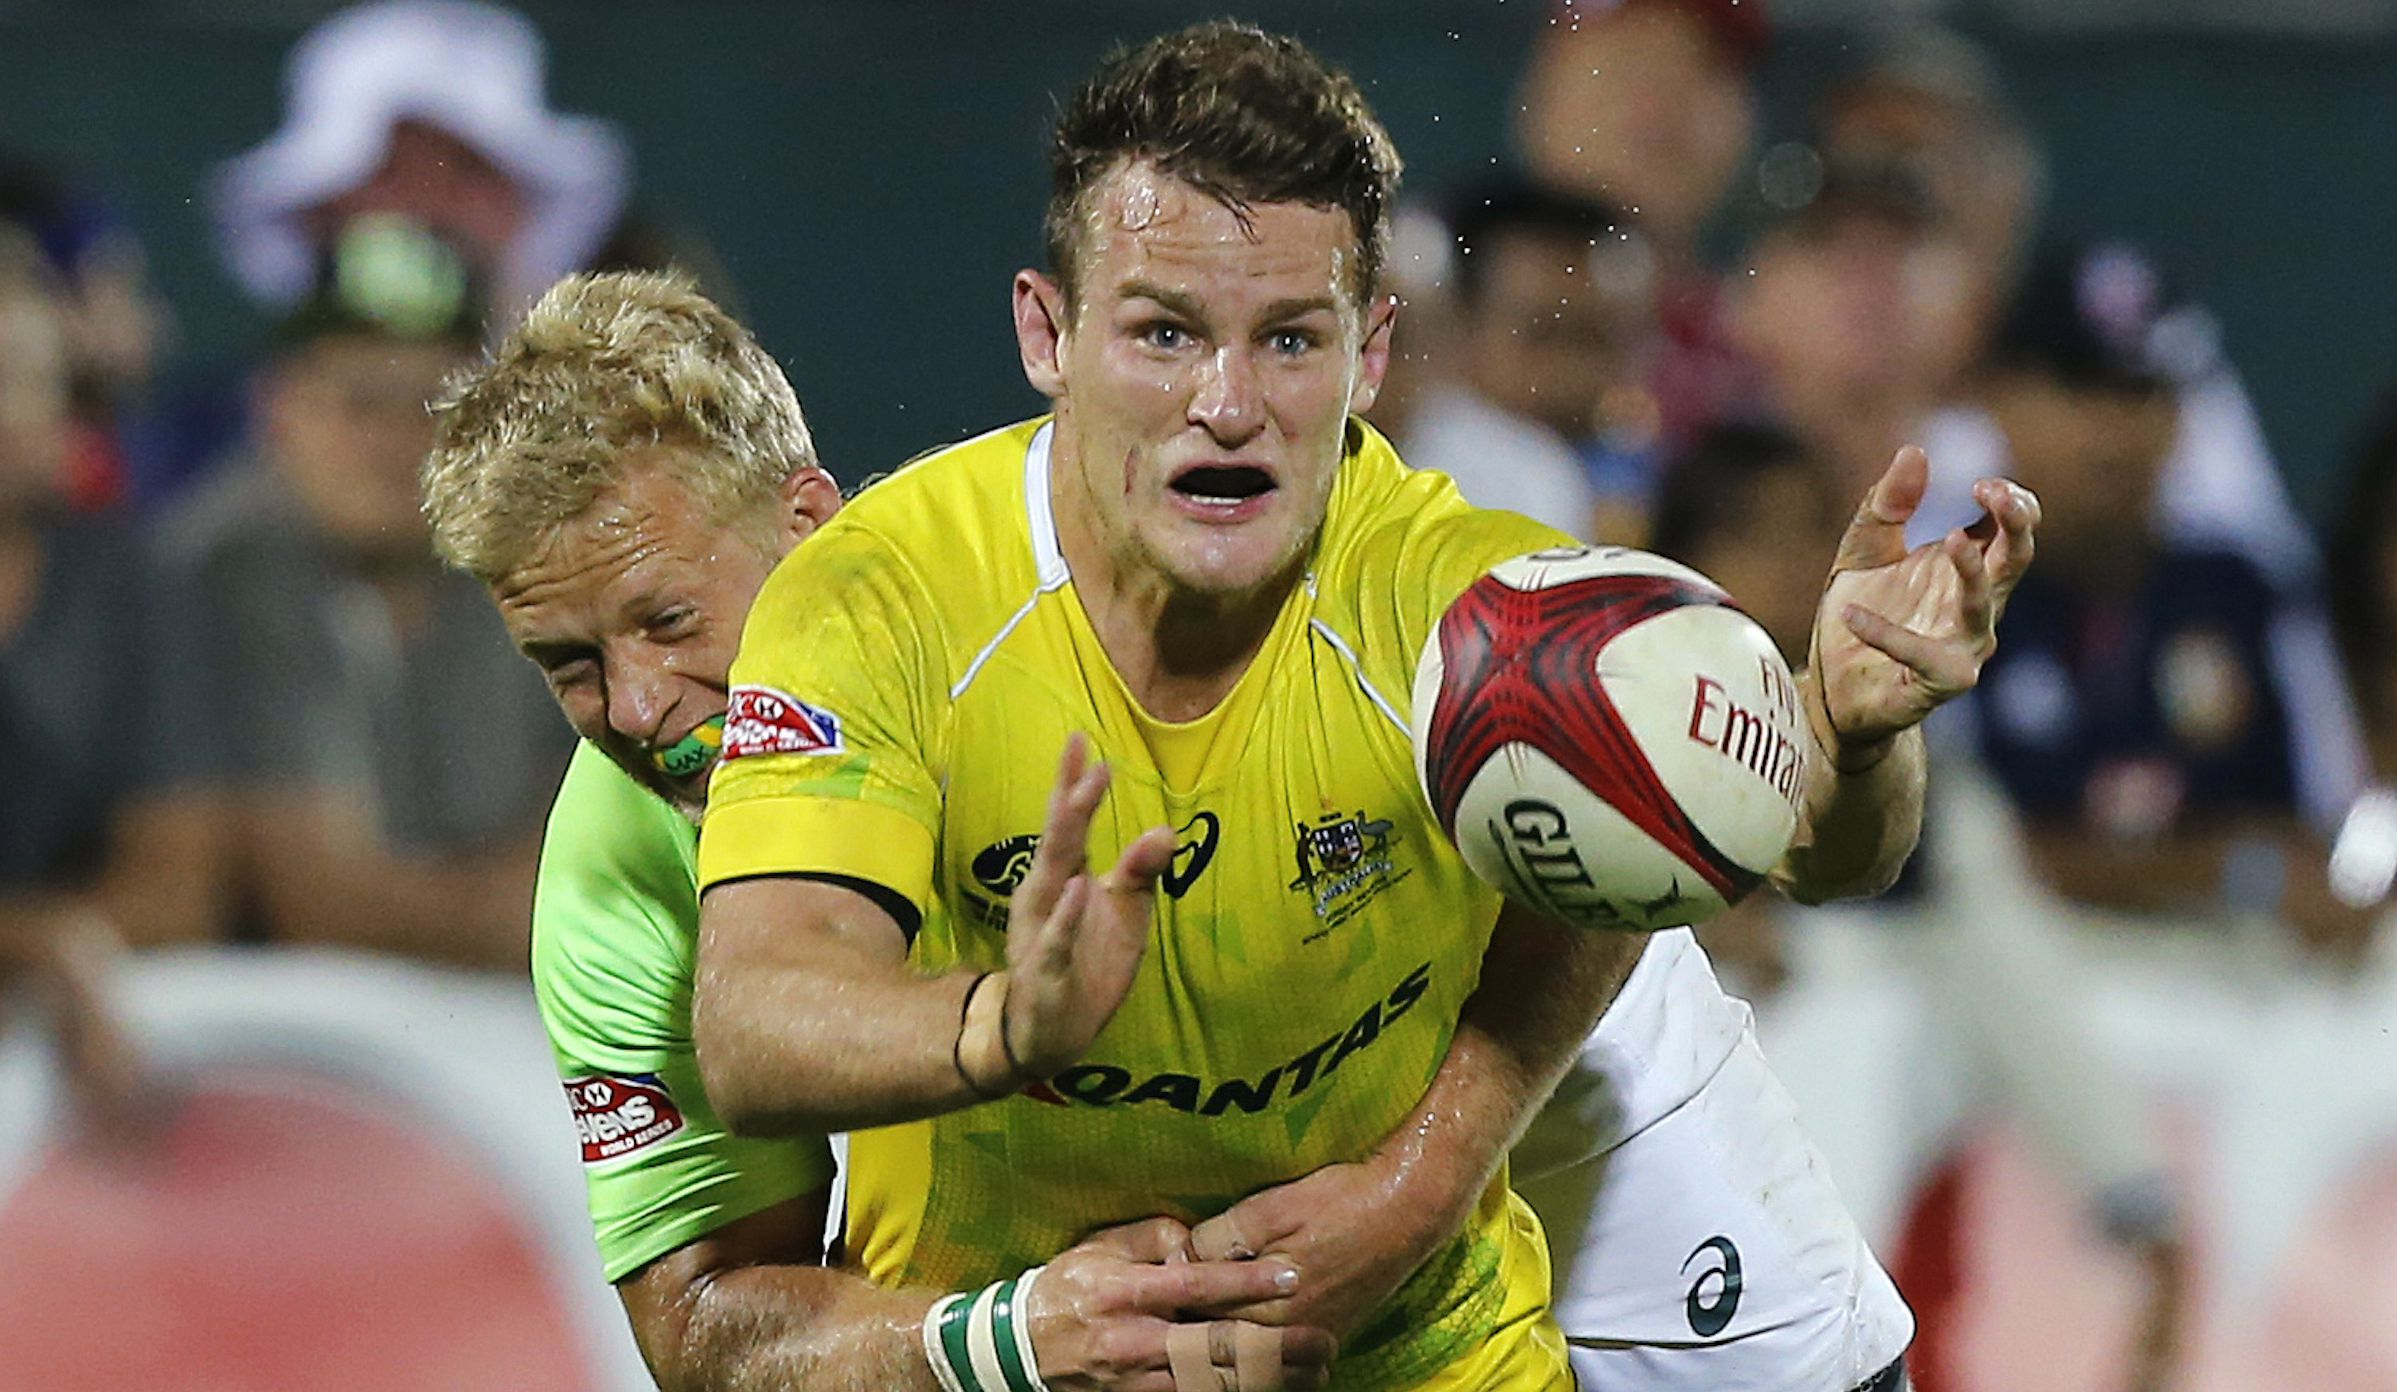 Australia's Con Foley is tackled by South Africa's Kyle Brown during their Sevens World Series final rugby match in Dubai December 6, 2014. REUTERS/Ahmed Jadallah (UNITED ARAB EMIRATES - Tags: SPORT RUGBY) - RTR4GYPL